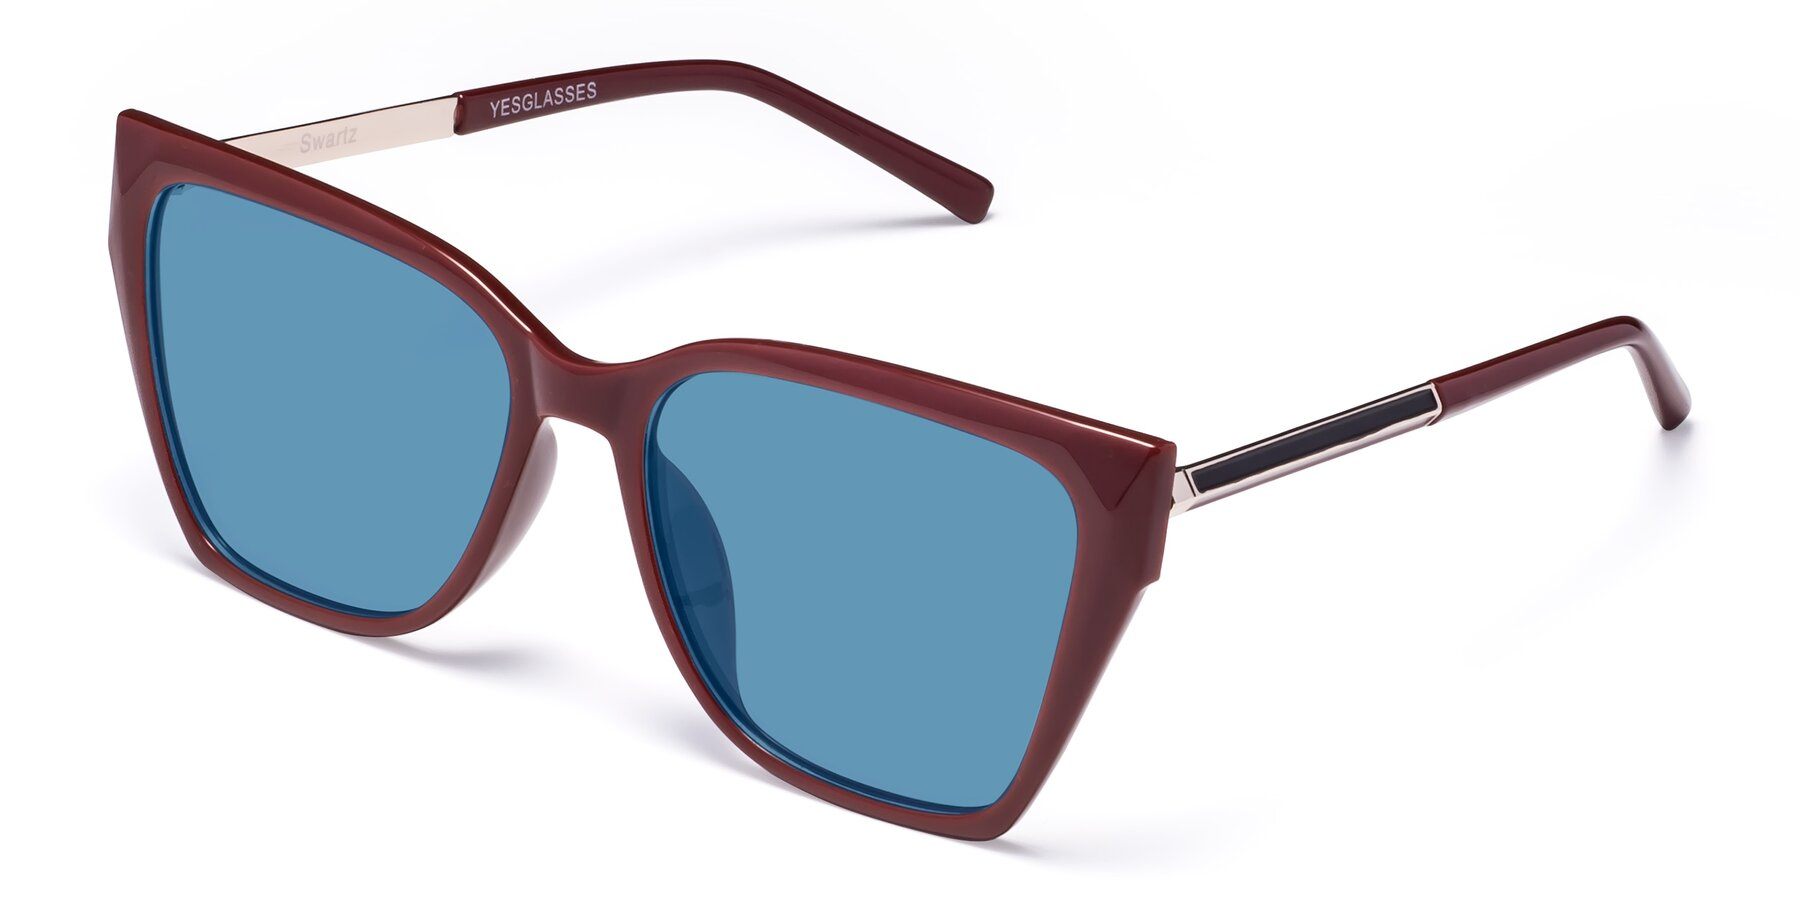 Angle of Swartz in Wine with Medium Blue Tinted Lenses